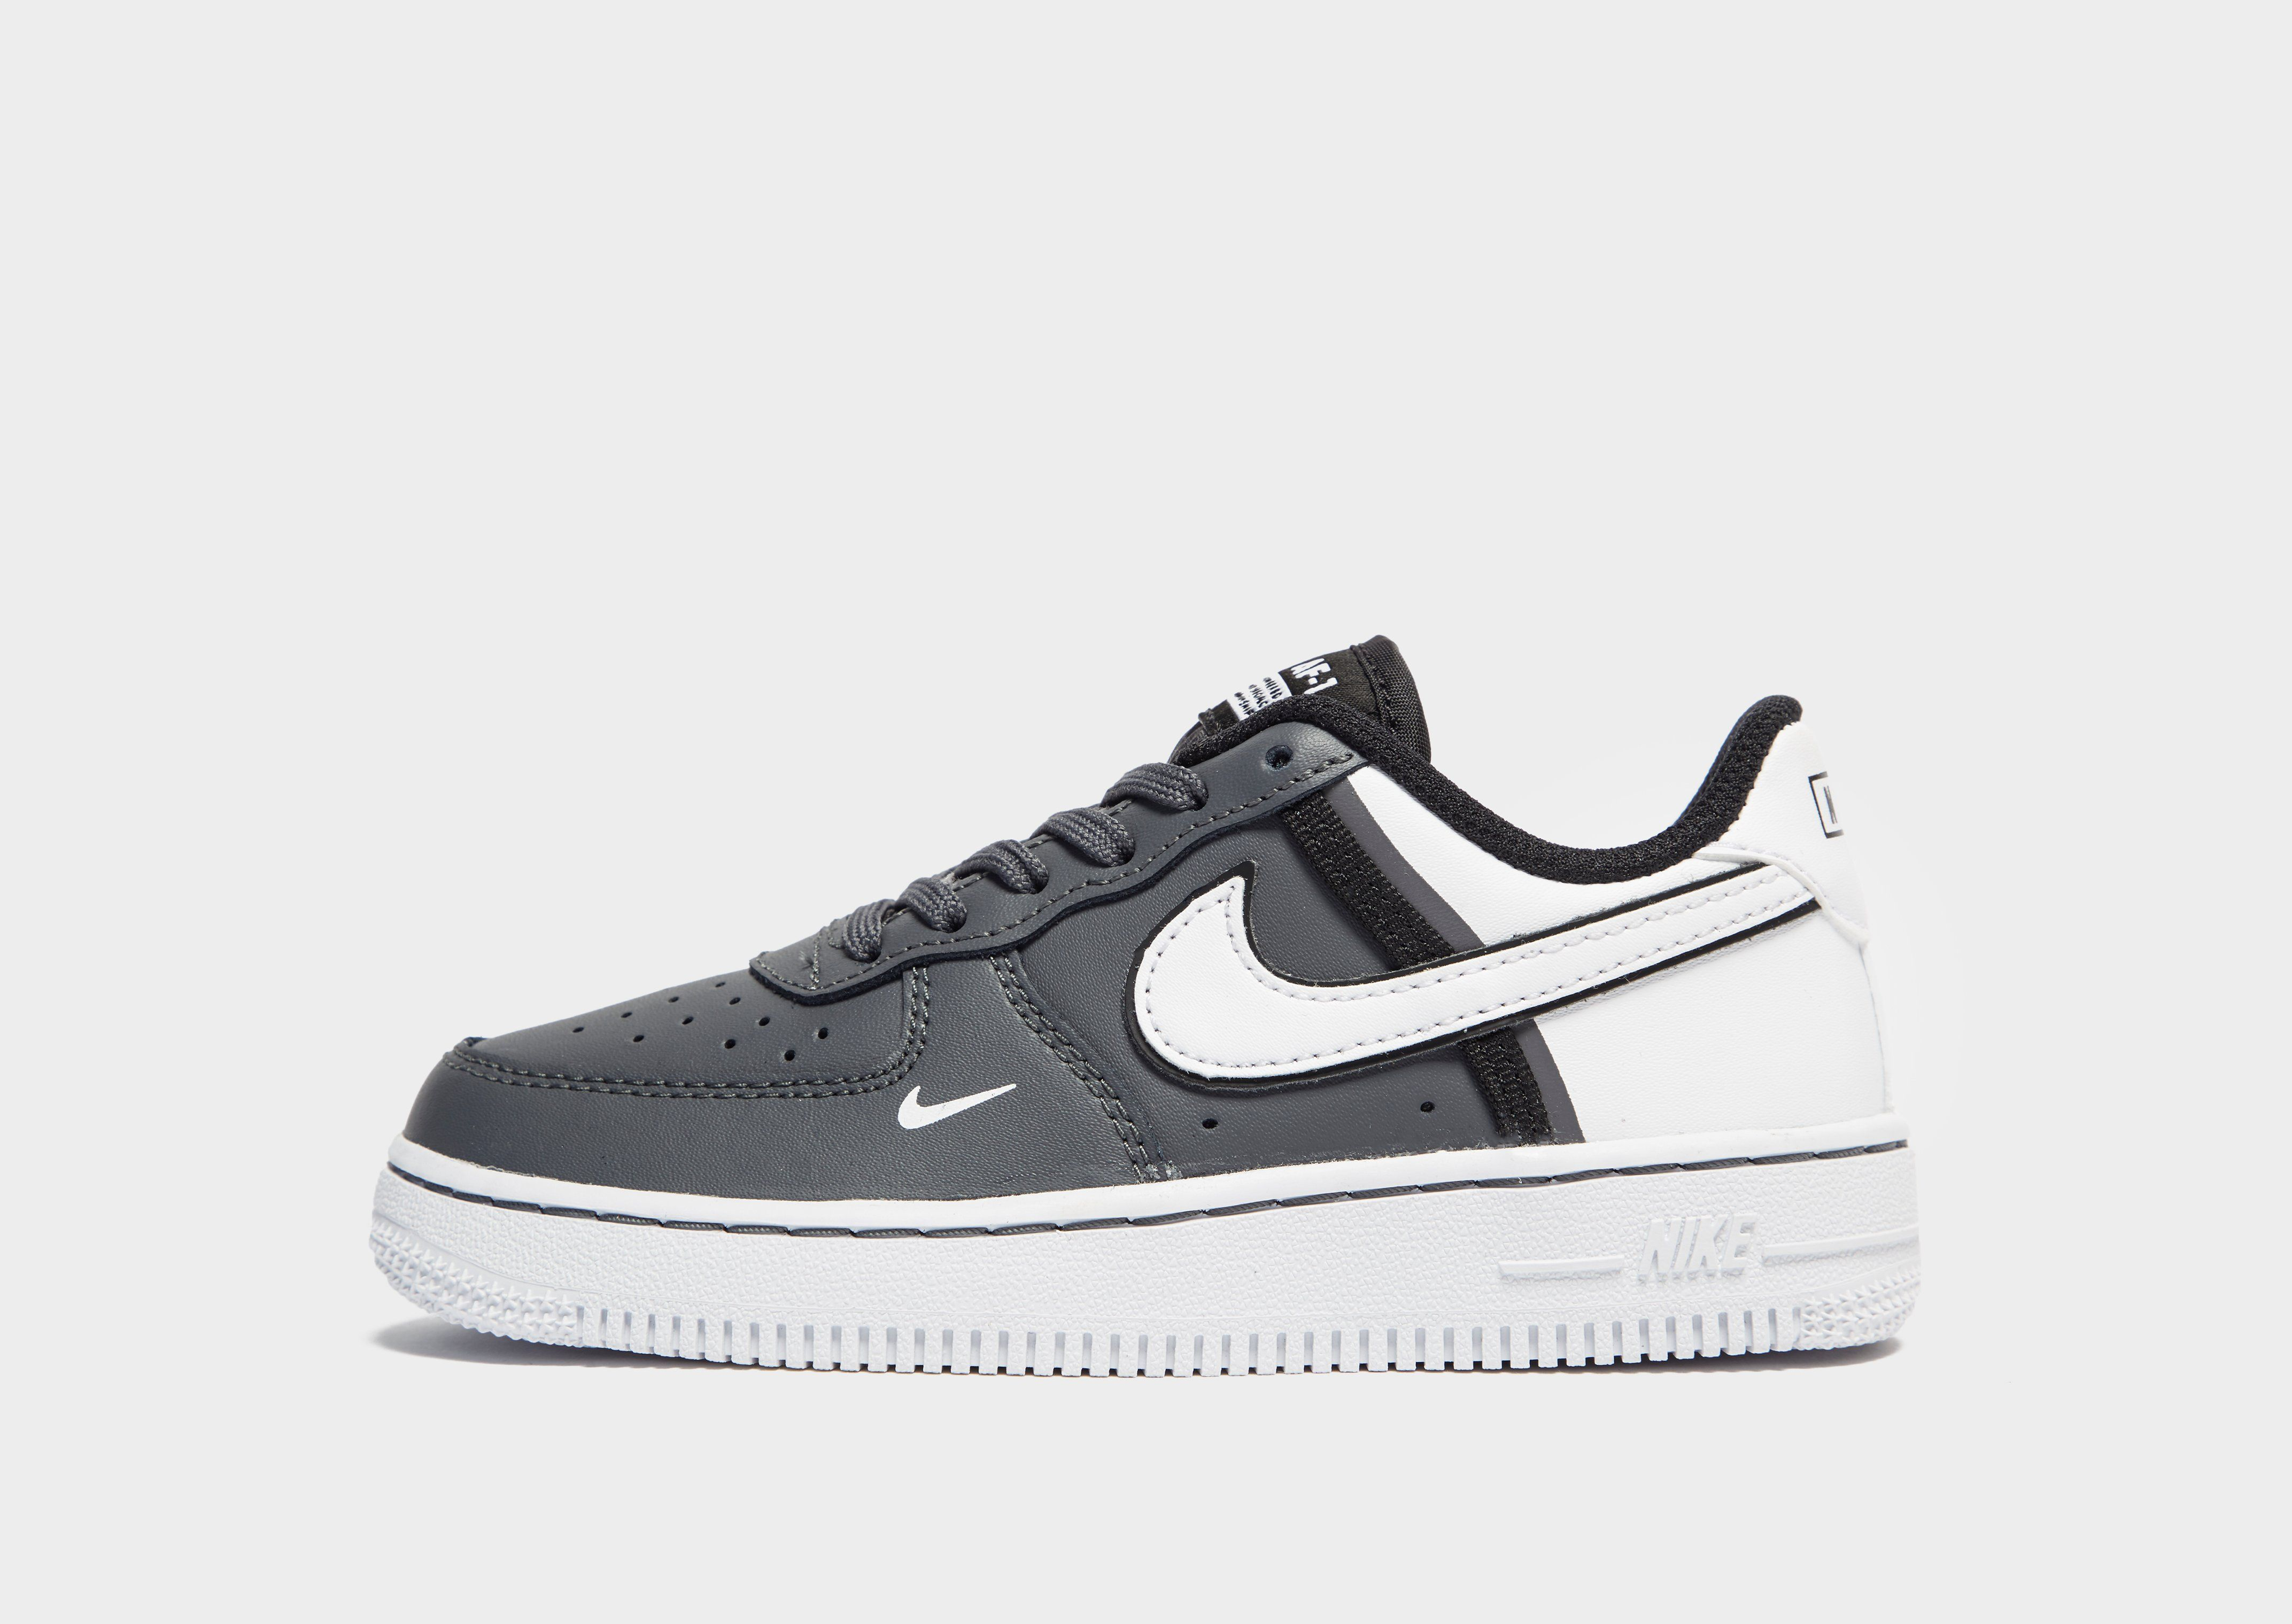 sélection premium f1435 a92c3 Nike Air Force 1 Low Children | JD Sports Ireland